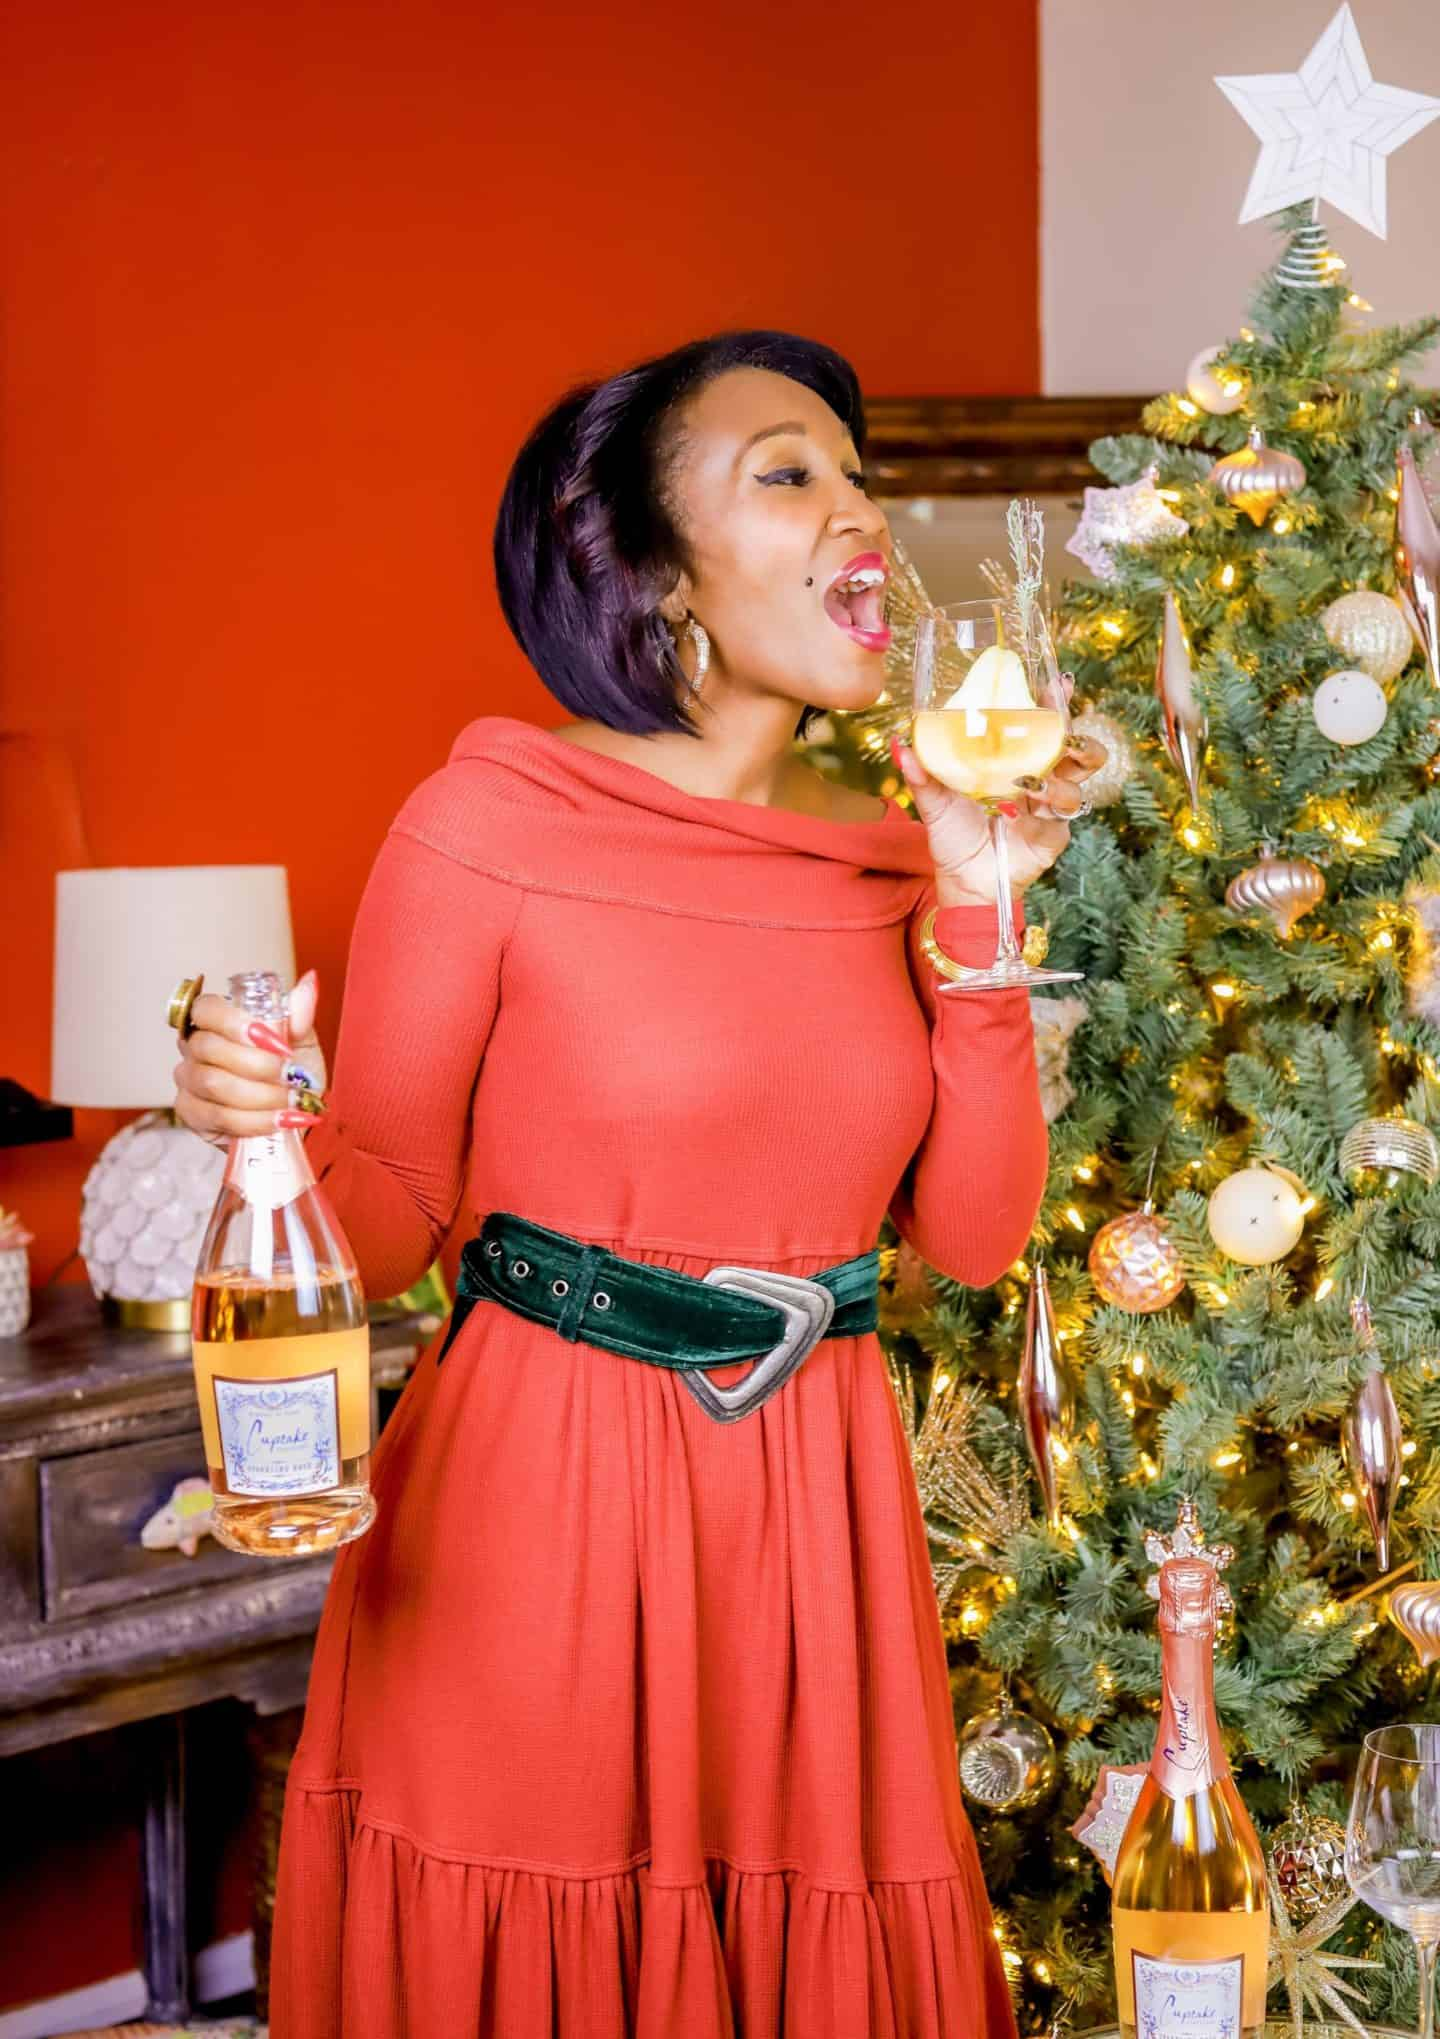 Sip This! - The Most Festive Holiday Cocktail | Shaunda Necole